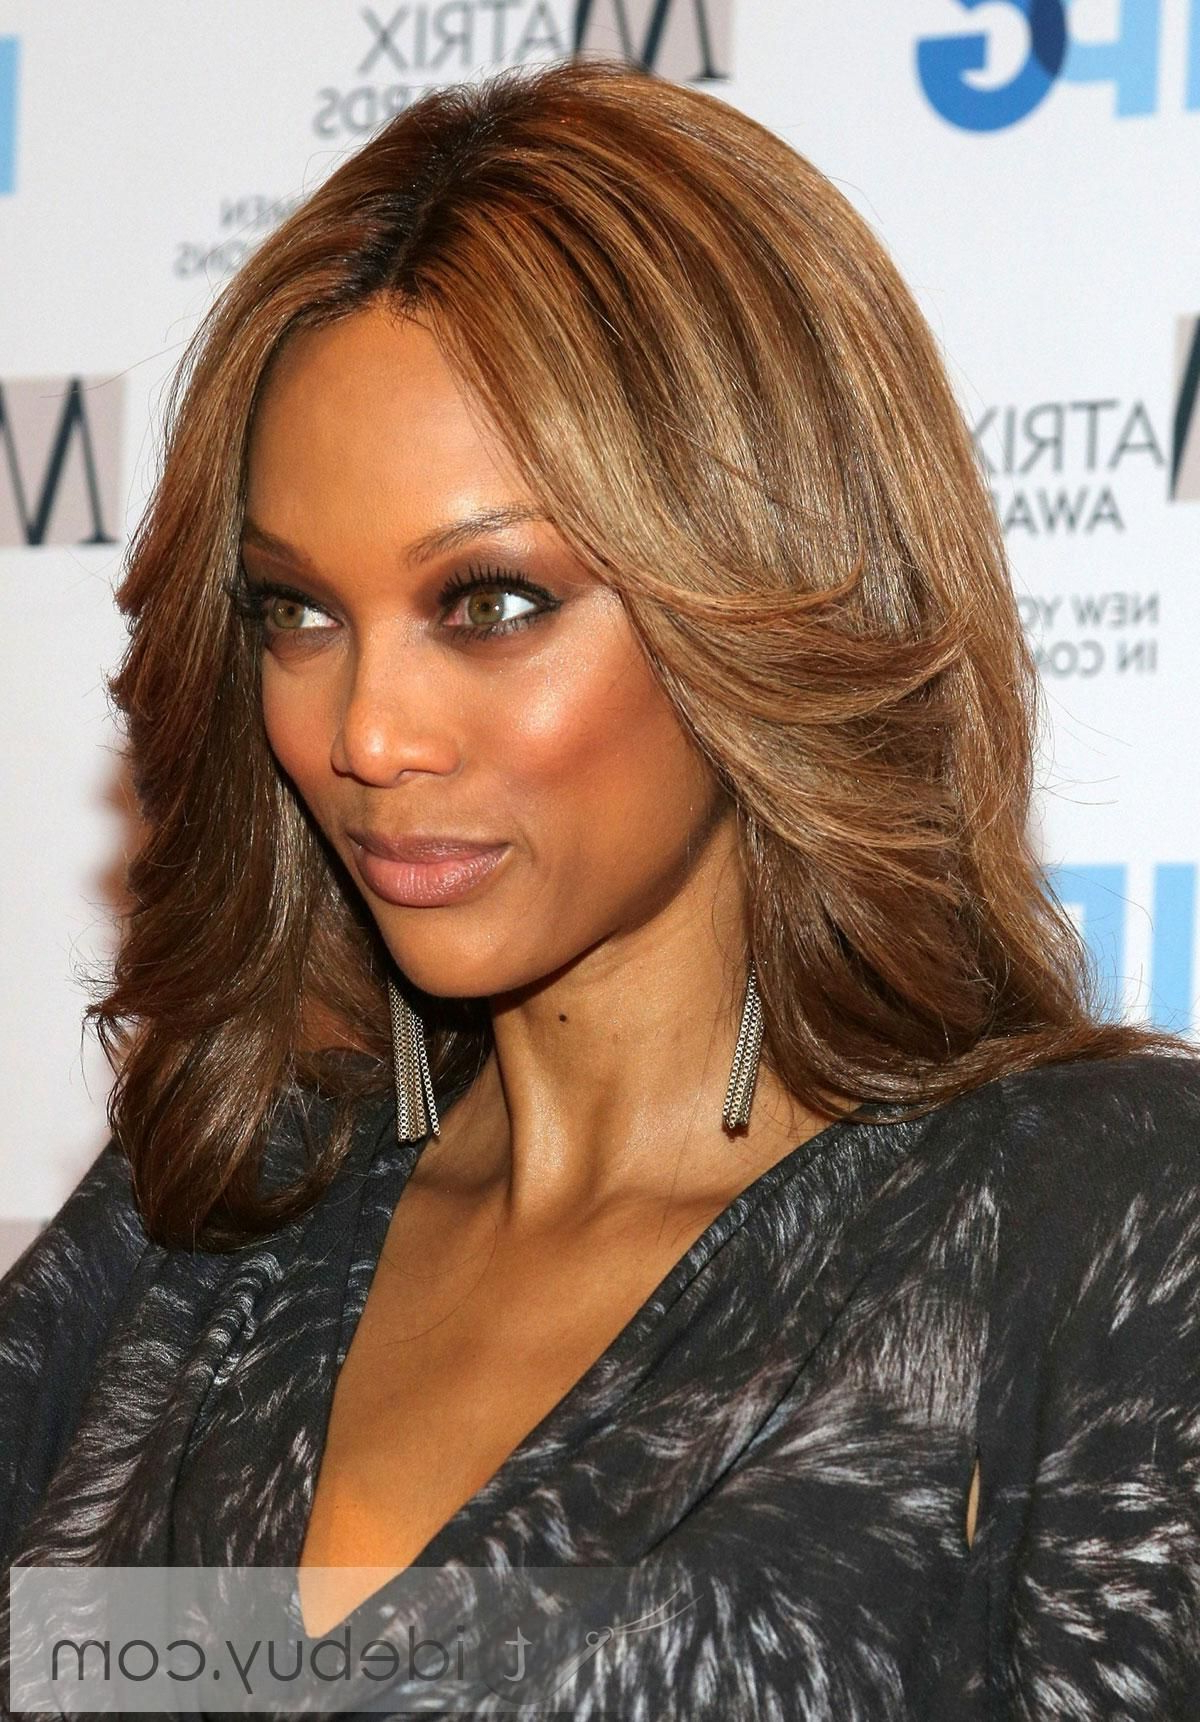 Tyra Banks Amazing Hairstyle Medium Straight Light Auburn Full Lace Within Most Up To Date Tyra Banks Medium Hairstyles (View 17 of 20)